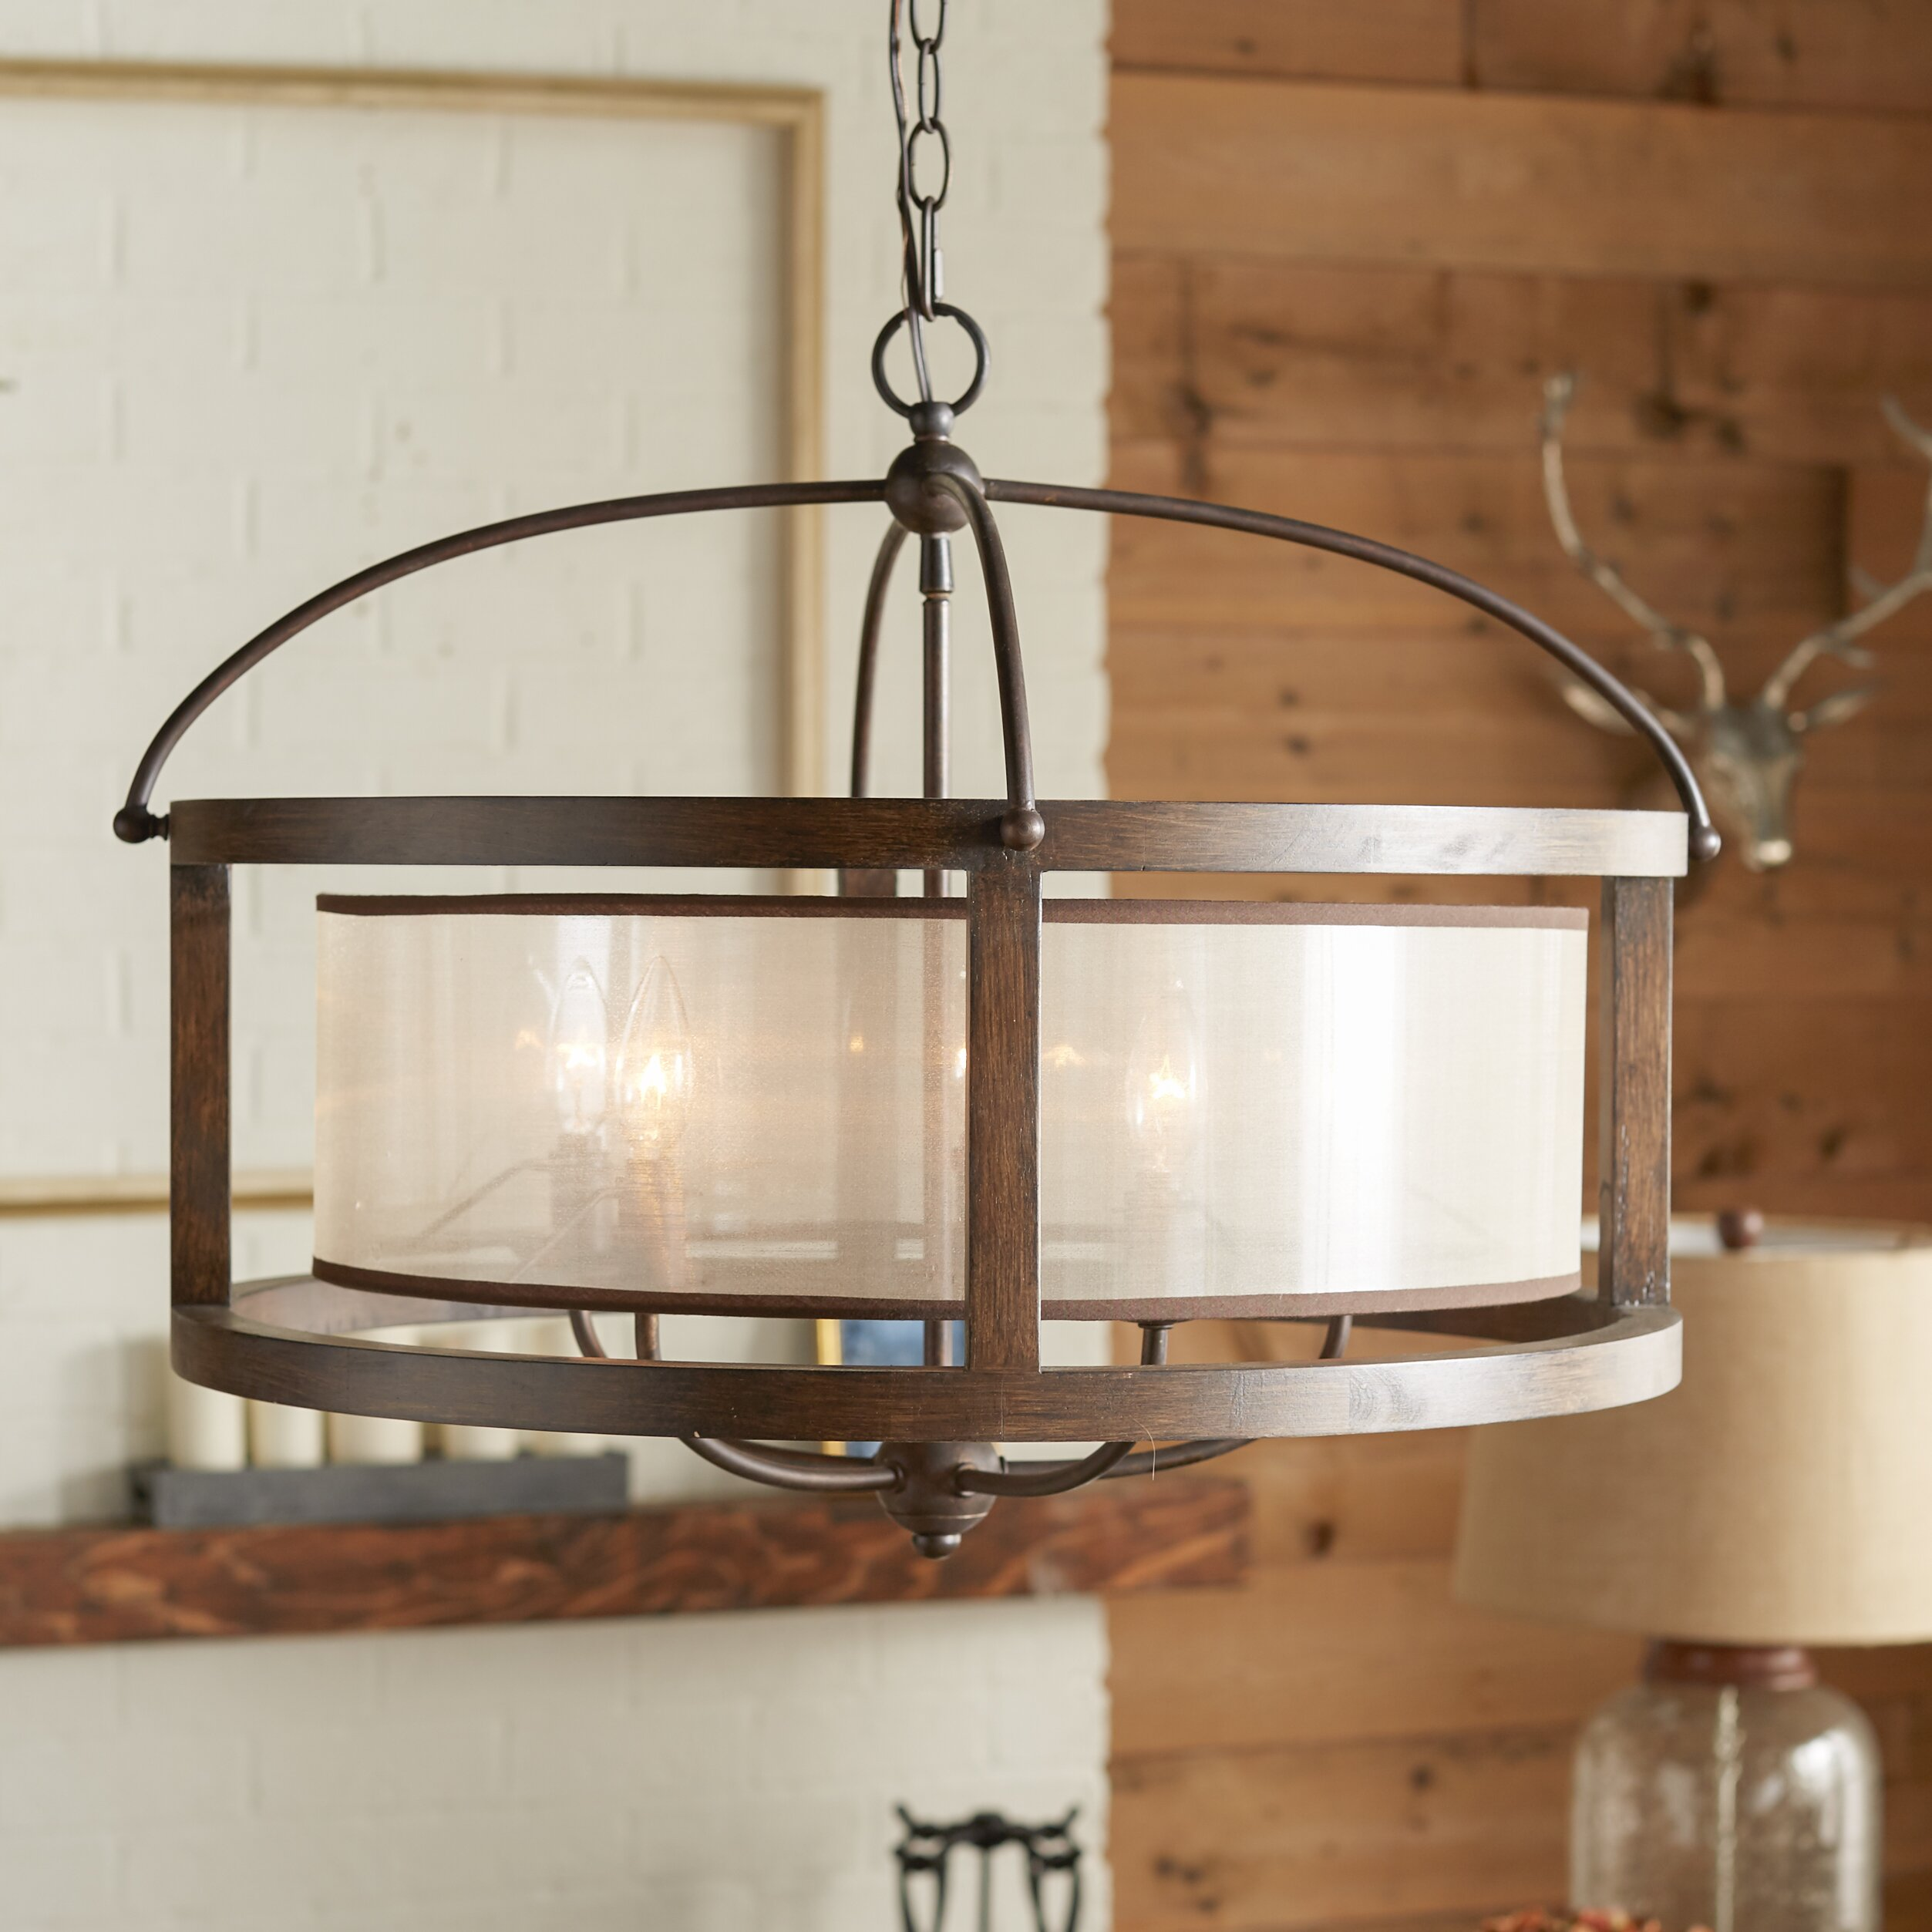 Wayfair Dining Room Lighting: Loon Peak Bundoran 5 Light Drum Chandelier & Reviews